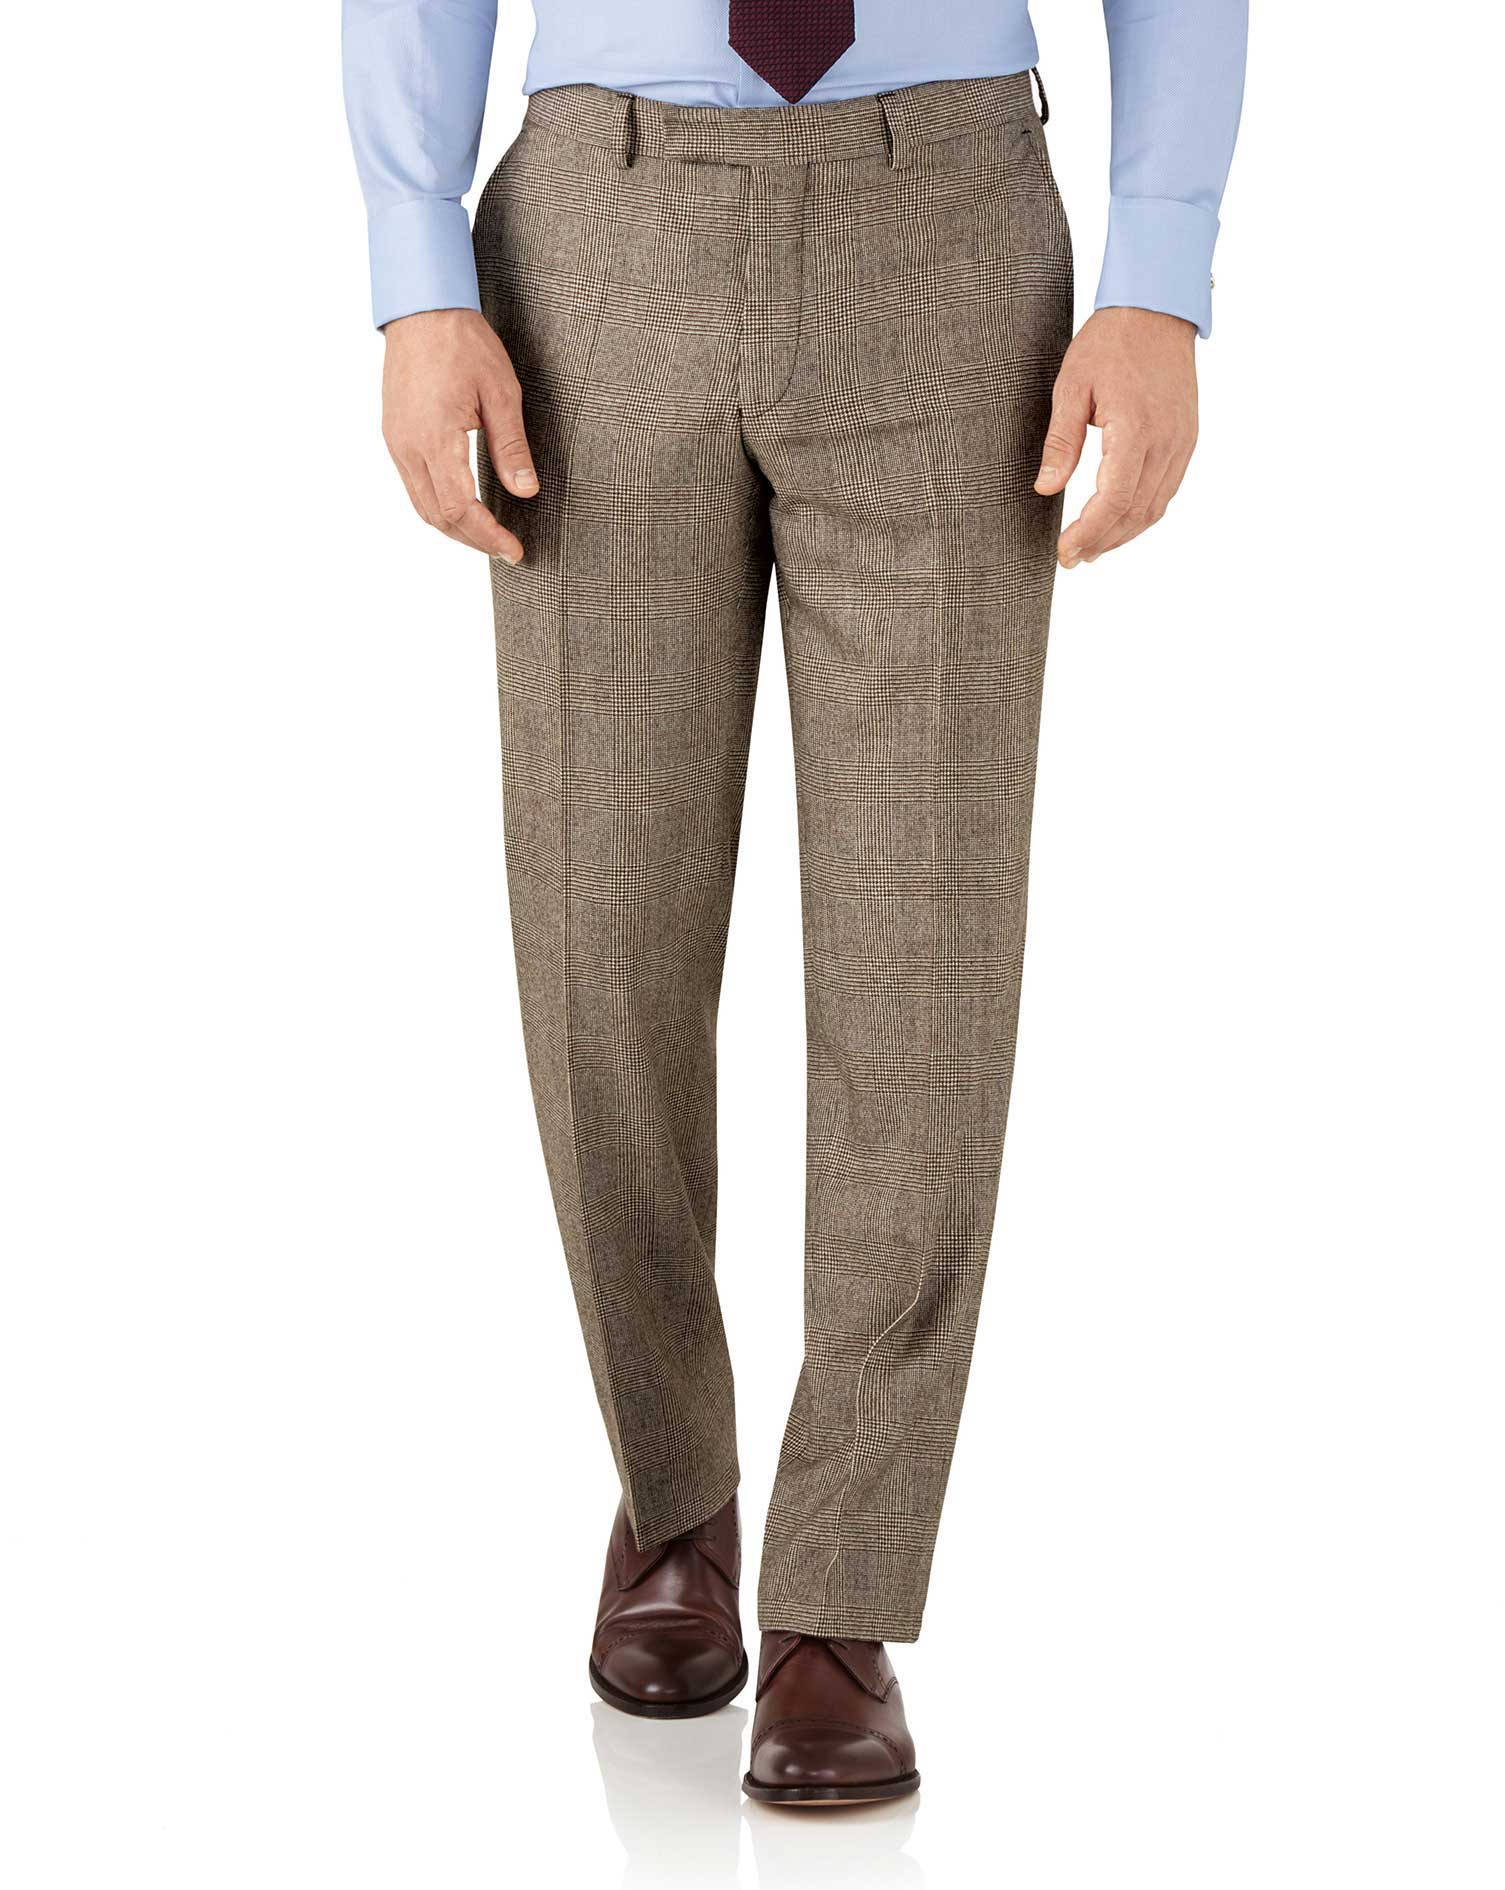 Tan check classic fit British serge luxury suit trousers